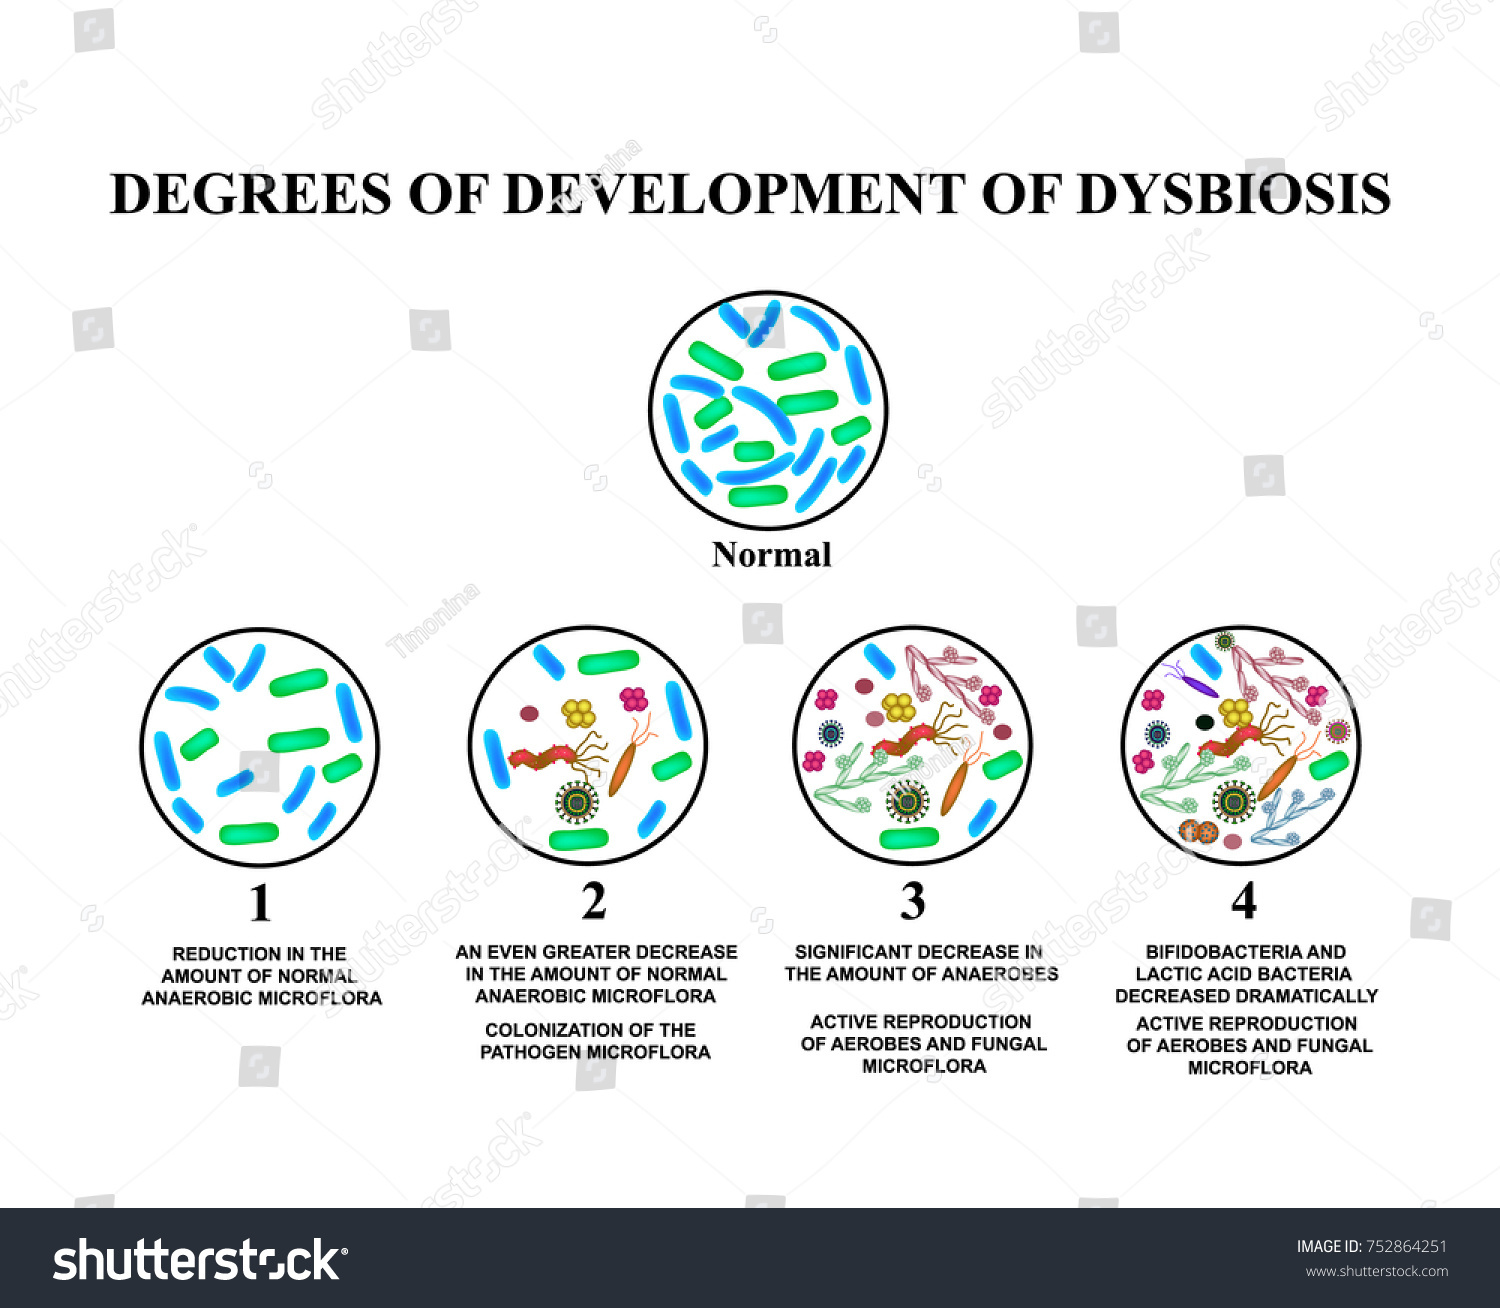 4 degrees development dysbiosis dysbacteriosis intestine stock 4 degrees of development of dysbiosis dysbacteriosis of the intestine the large intestine pooptronica Image collections